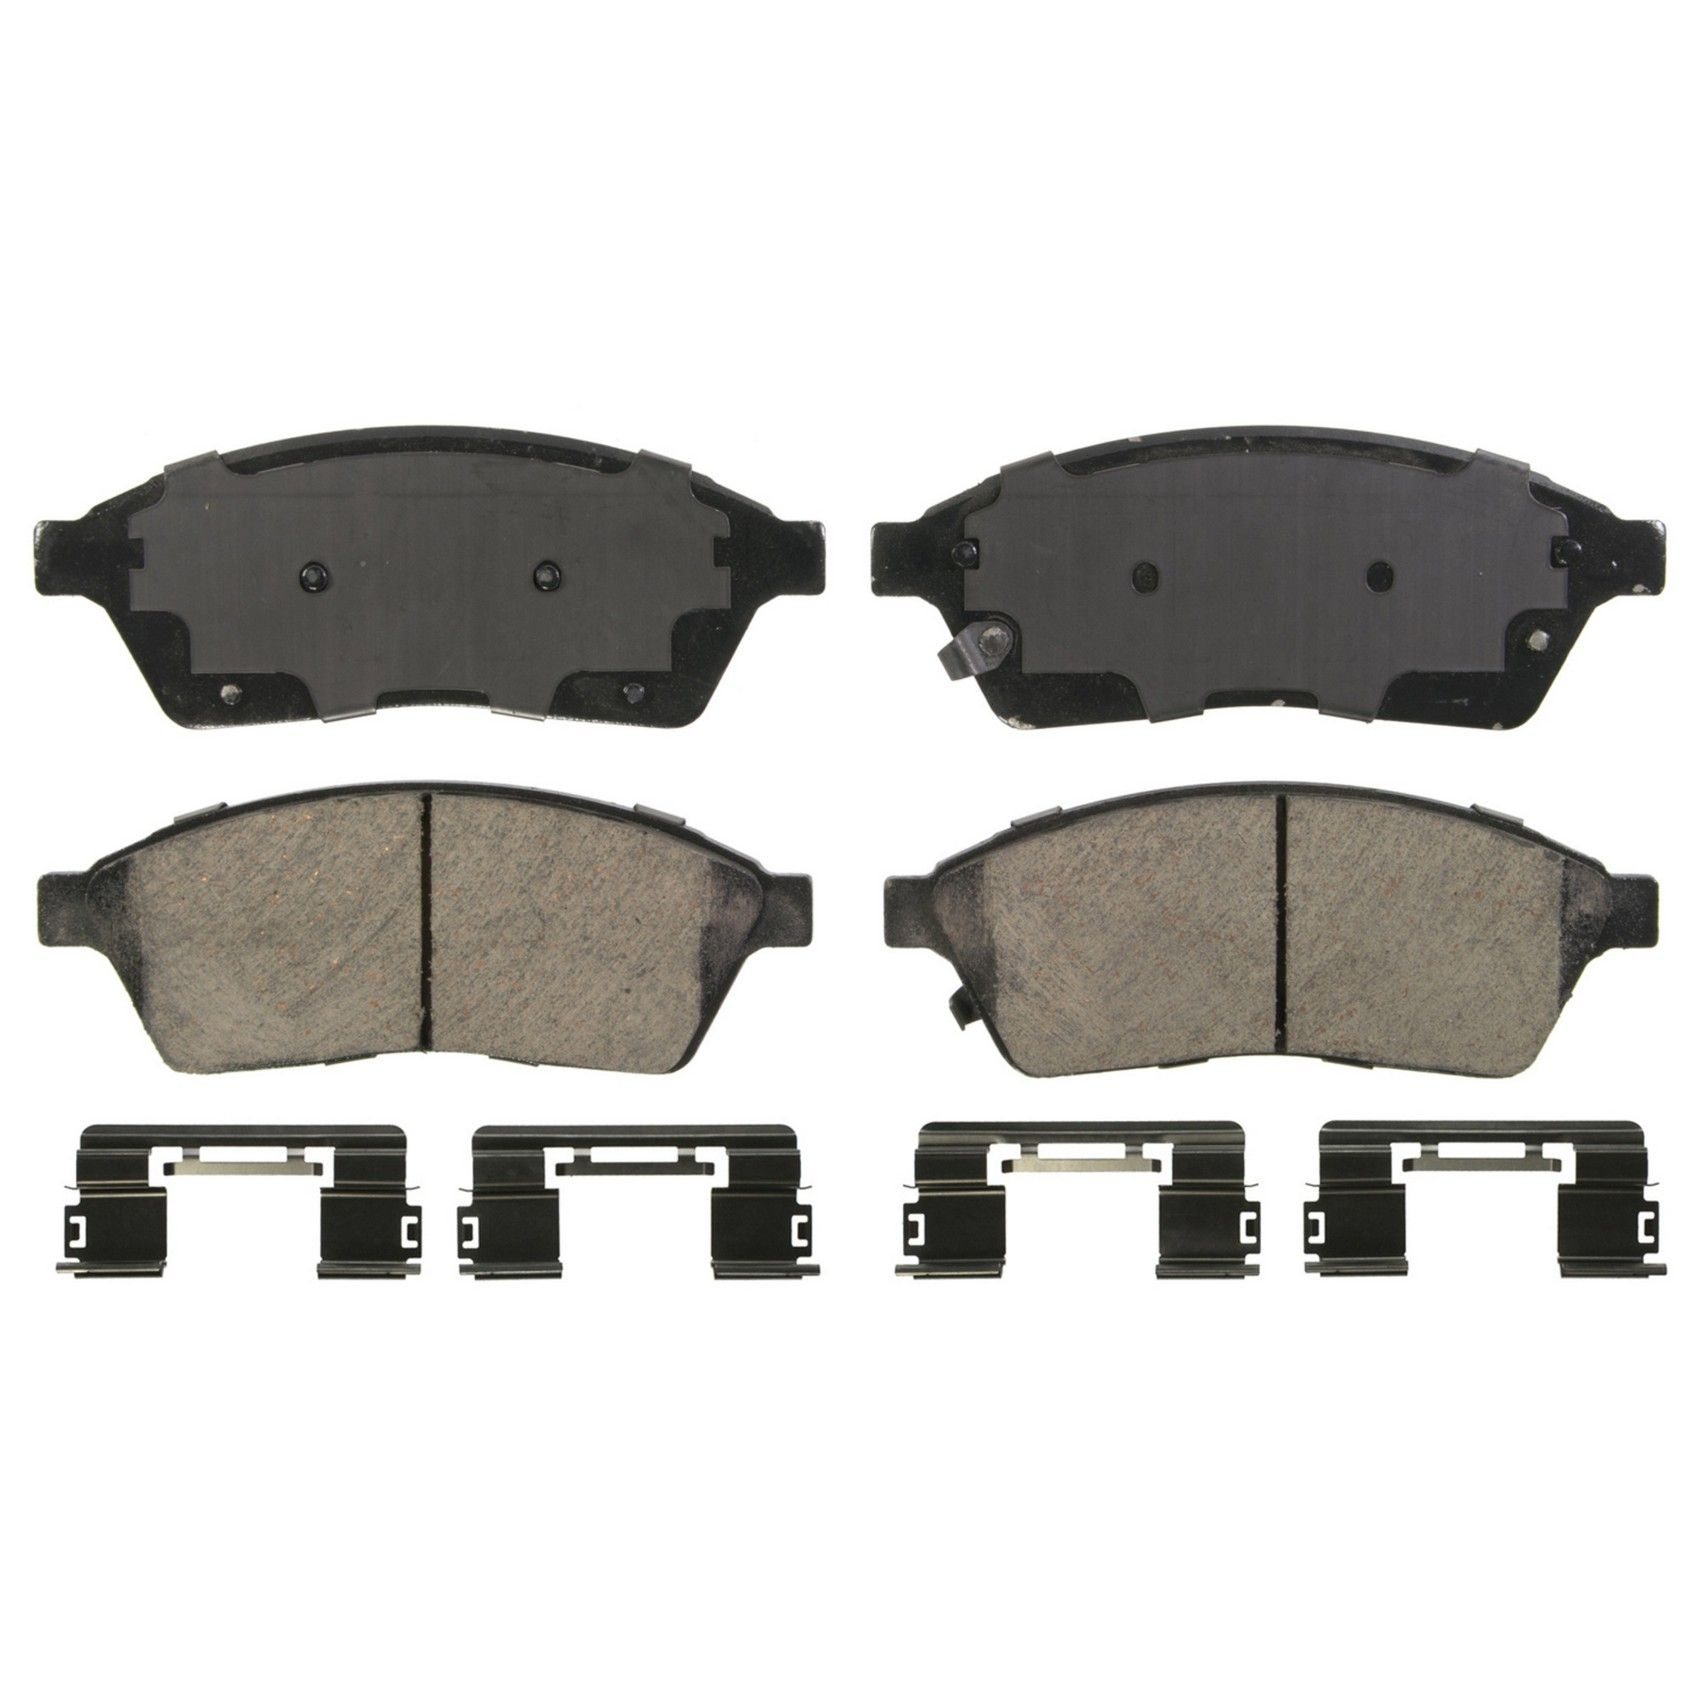 Cadillac Srx Disc Brake Pad Replacement Akebono Bosch Centric 2013 Wiring Diagram Front Wagner Brakes Zd1422 Oe Ceramic Includes Installation Hardware Kit Quickstop